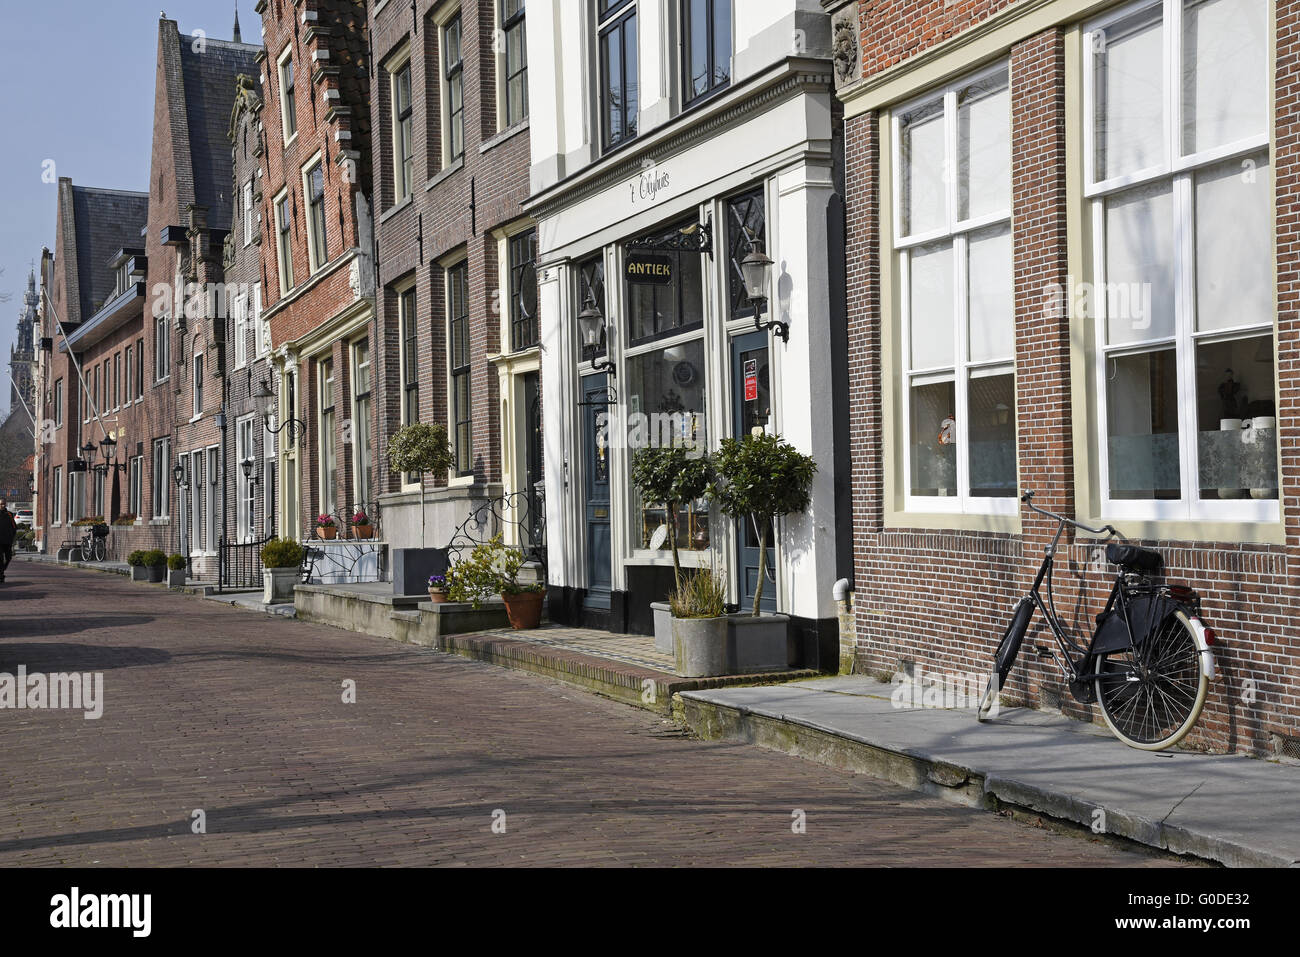 historic city, Edam, The Netherlands - Stock Image